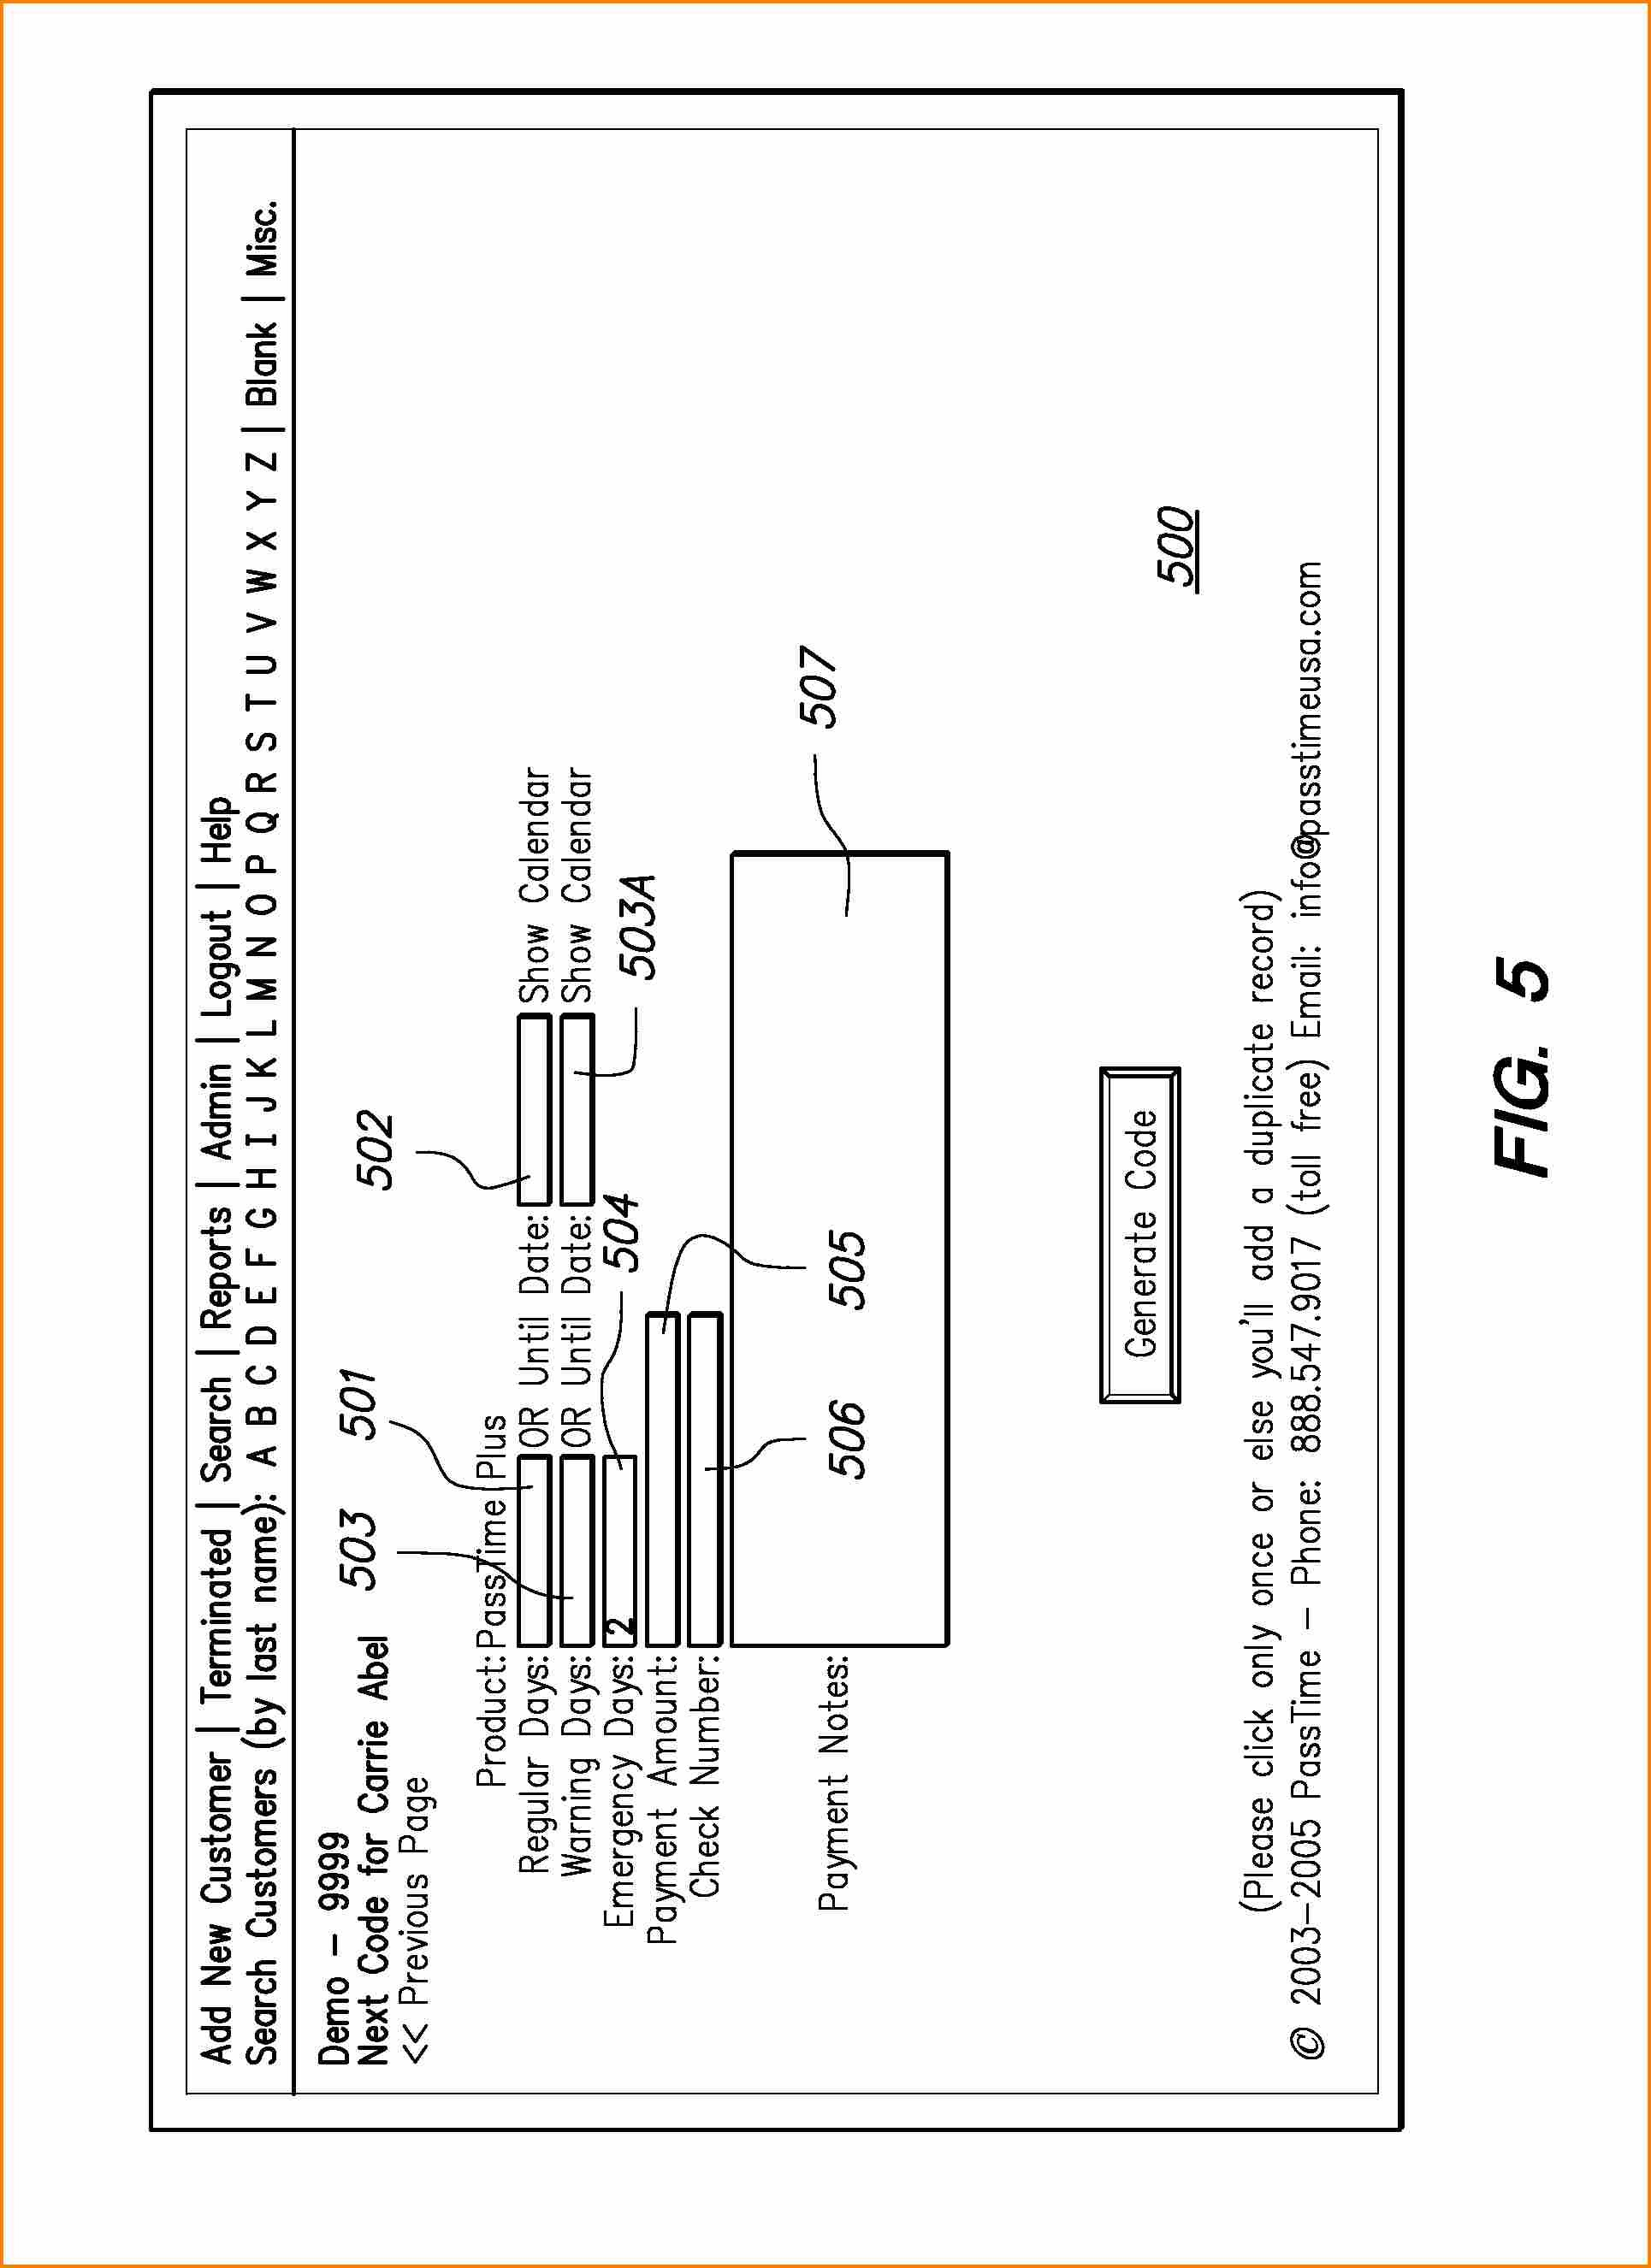 Ford 7740 Engine Diagram. Ford. Auto Wiring Diagram